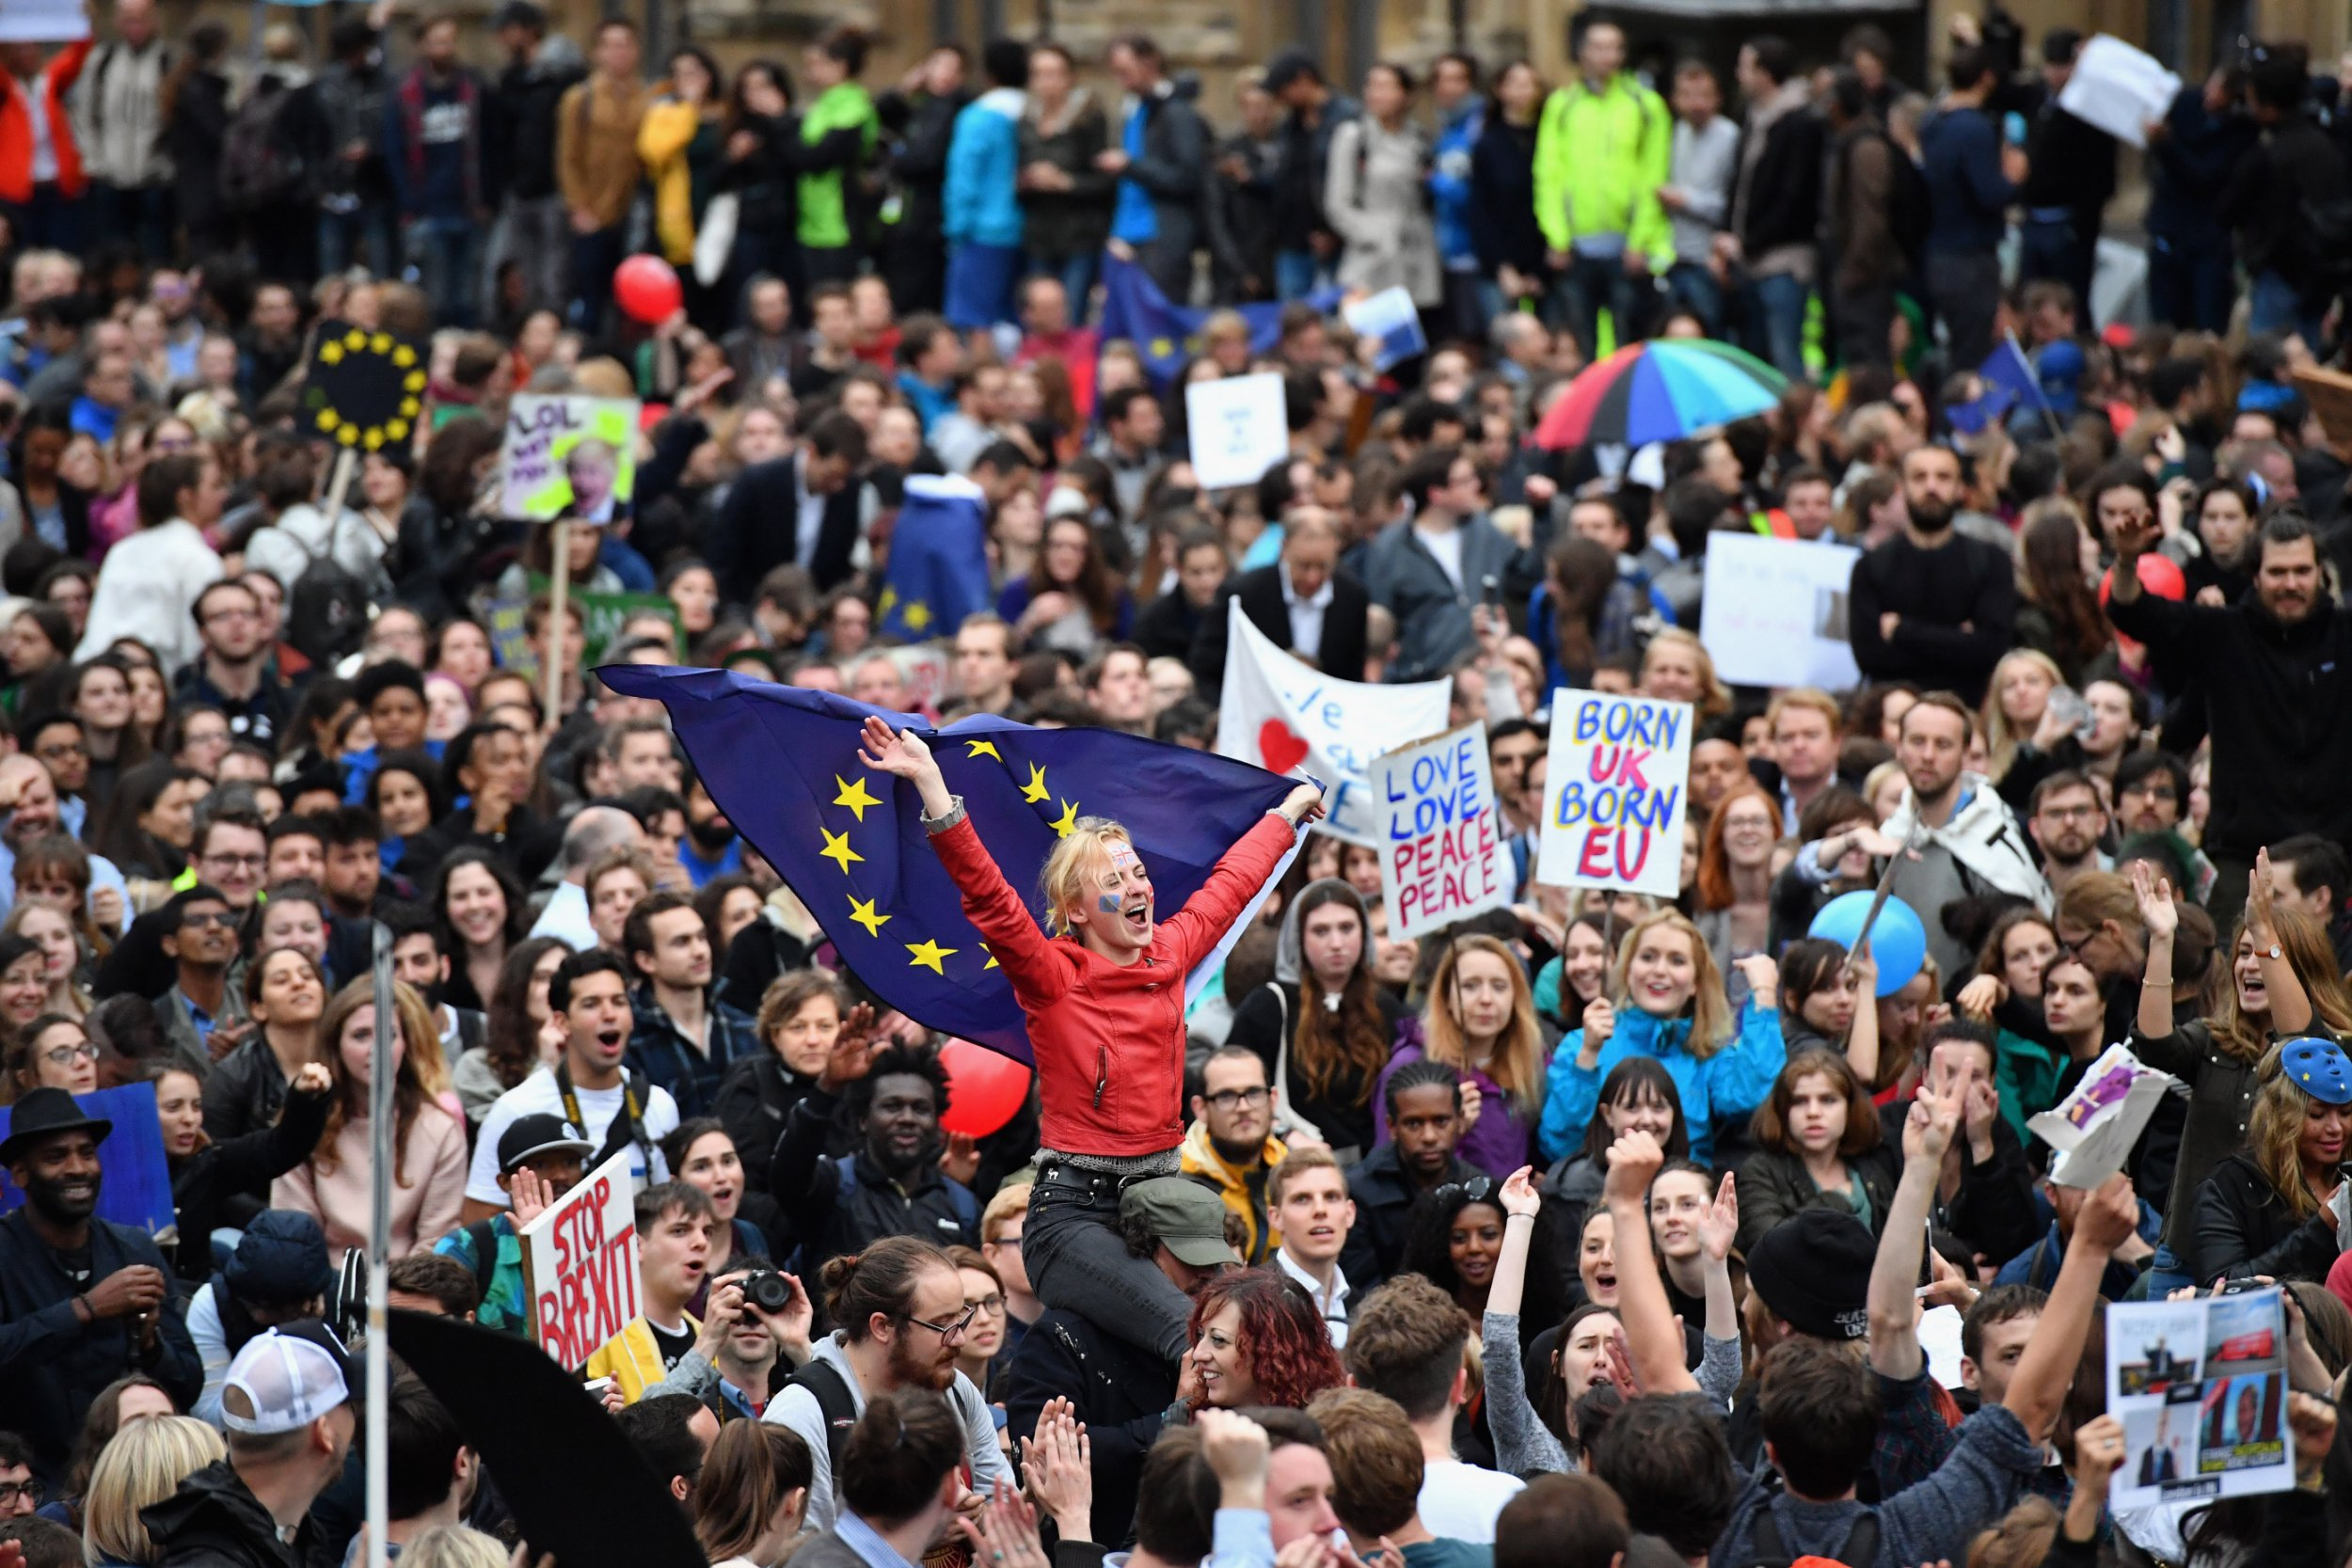 LONDON, ENGLAND - JUNE 28: Protesters demonstrate against the EU referendum result outside the Houses of Parliament on June 28, 2016 in London, England. Up to 50,000 people were expected before the event was cancelled due to safety concerns. In the early evening a crowd still convereged on the square to vent their anti-Brexit feelings, before the protest moved to the Houses of Parliament. (Photo by Jeff J Mitchell/Getty Images)